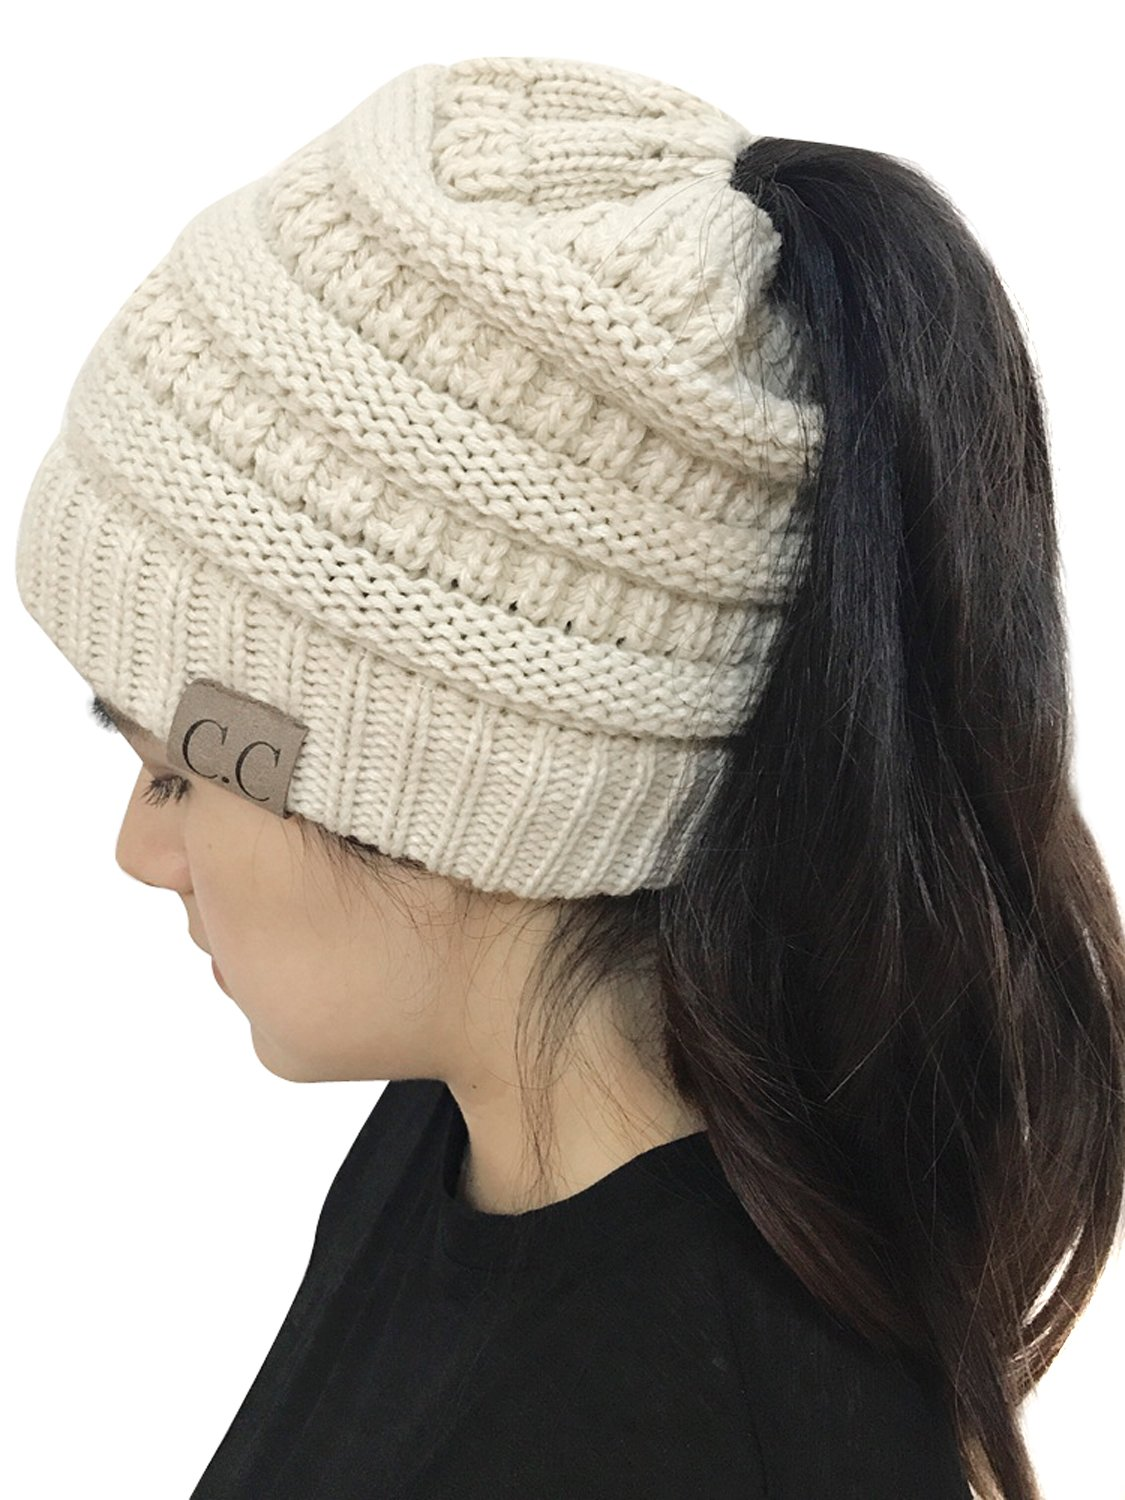 Joeoy Women's Beige Stretch Messy High Bun Ponytail Beanie Multi Color Cable Knit Hat Cap